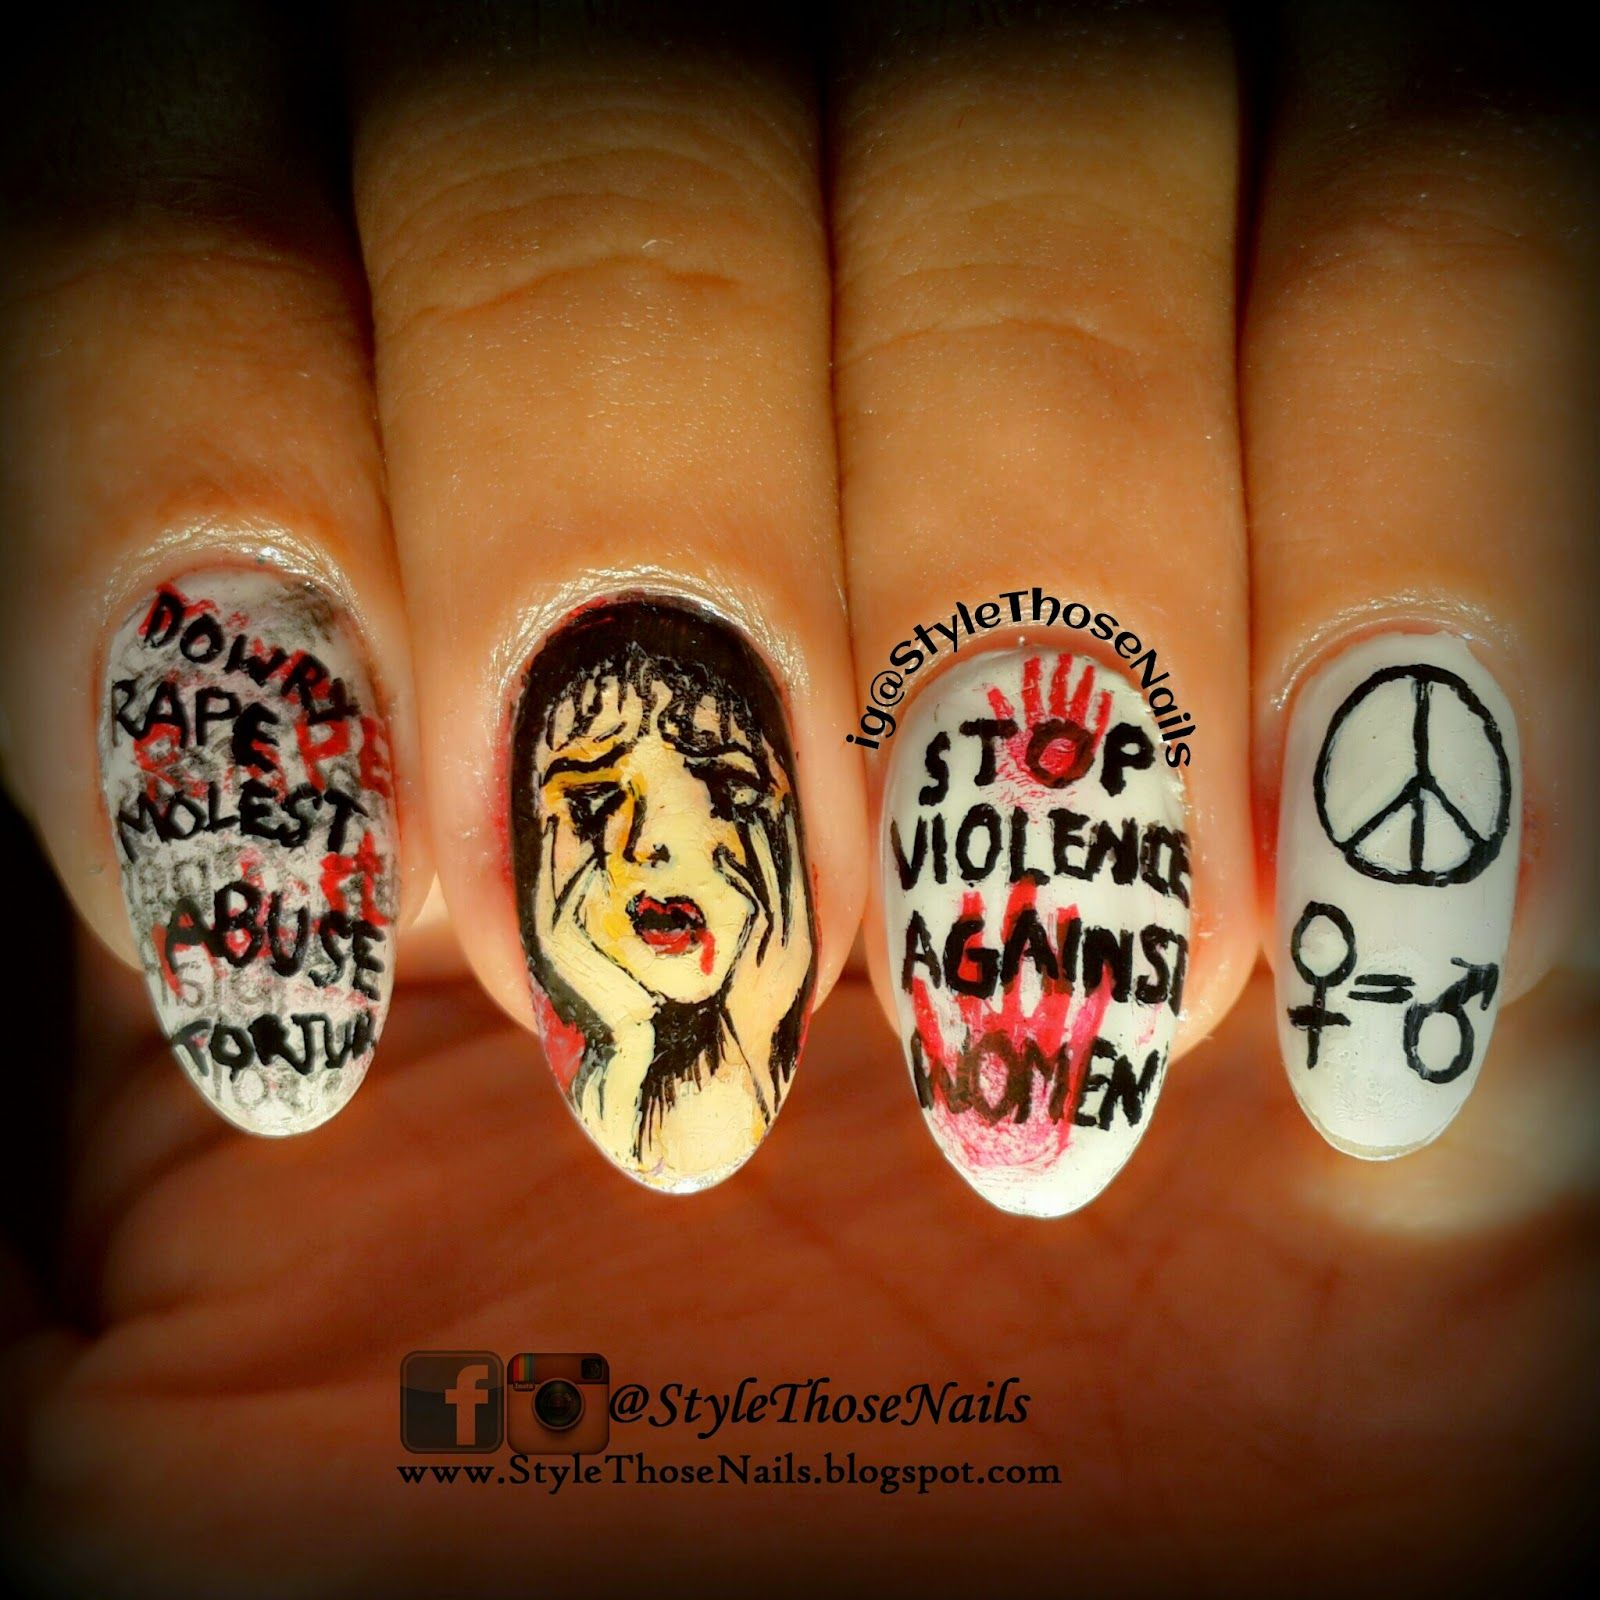 Stop Violence Against Women Nailart For A Cause Part 1